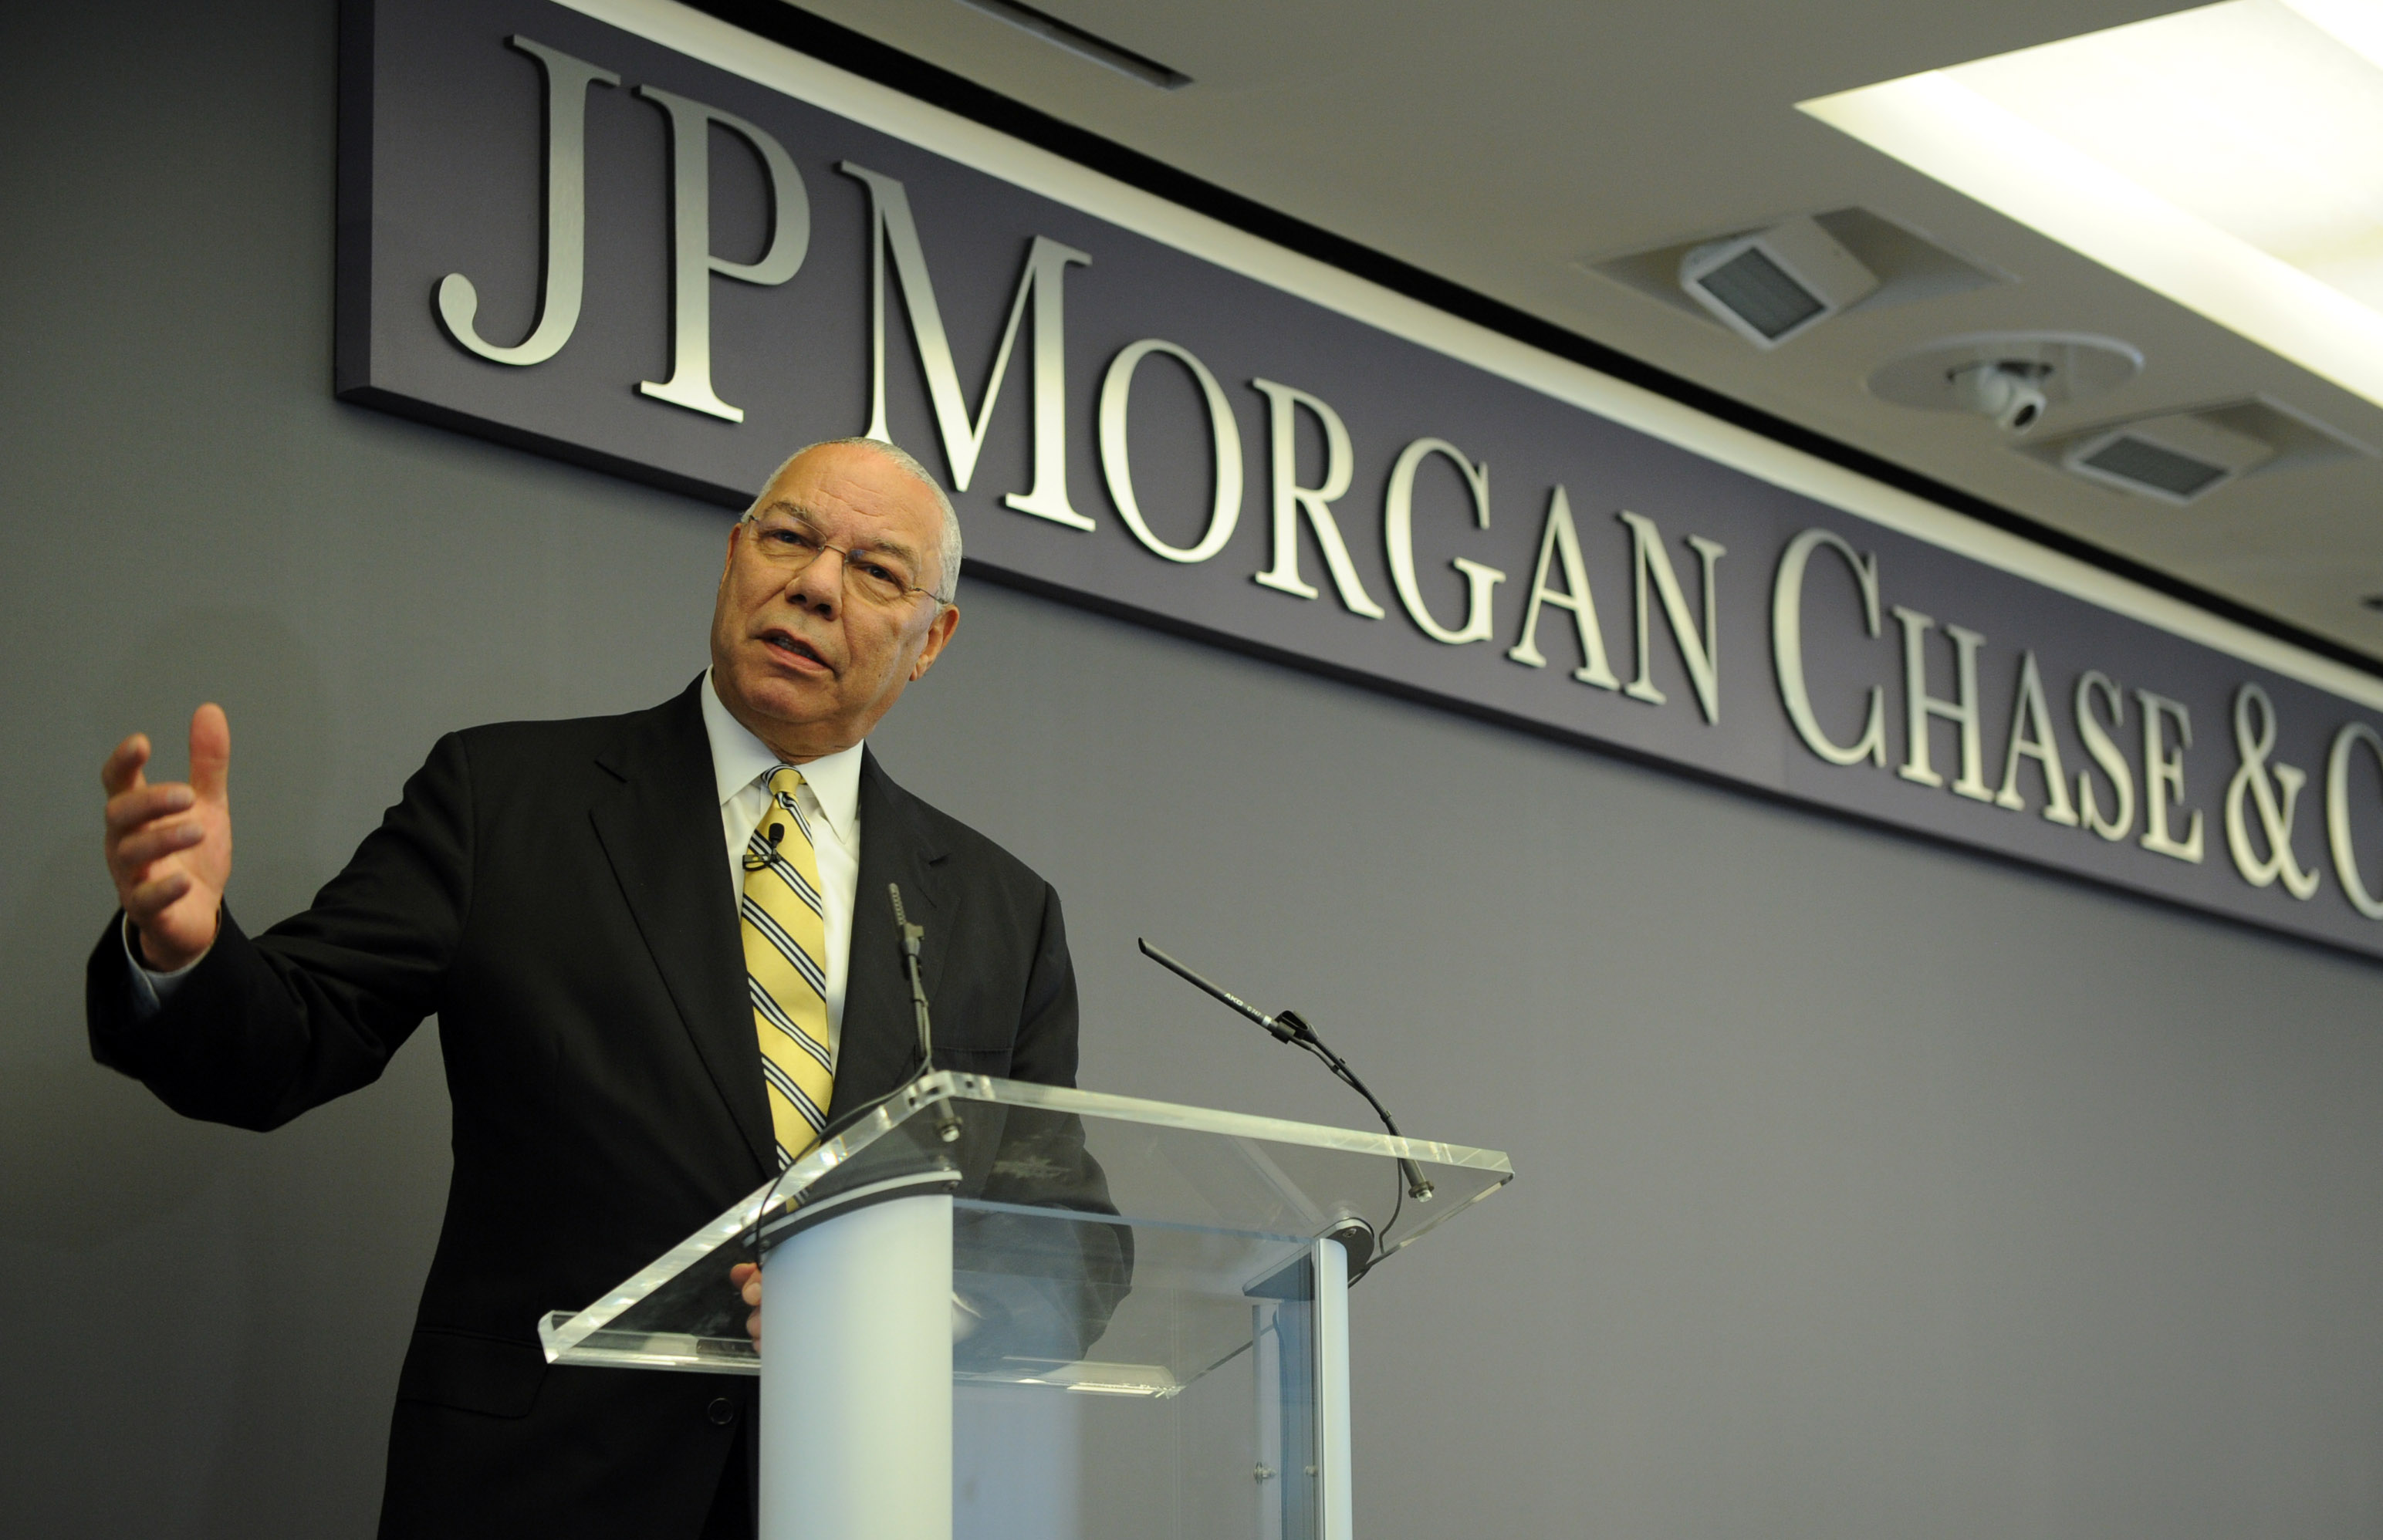 Colin Powell Speaks: Mentoring, Reality TV & 'Baby Mama' Concept